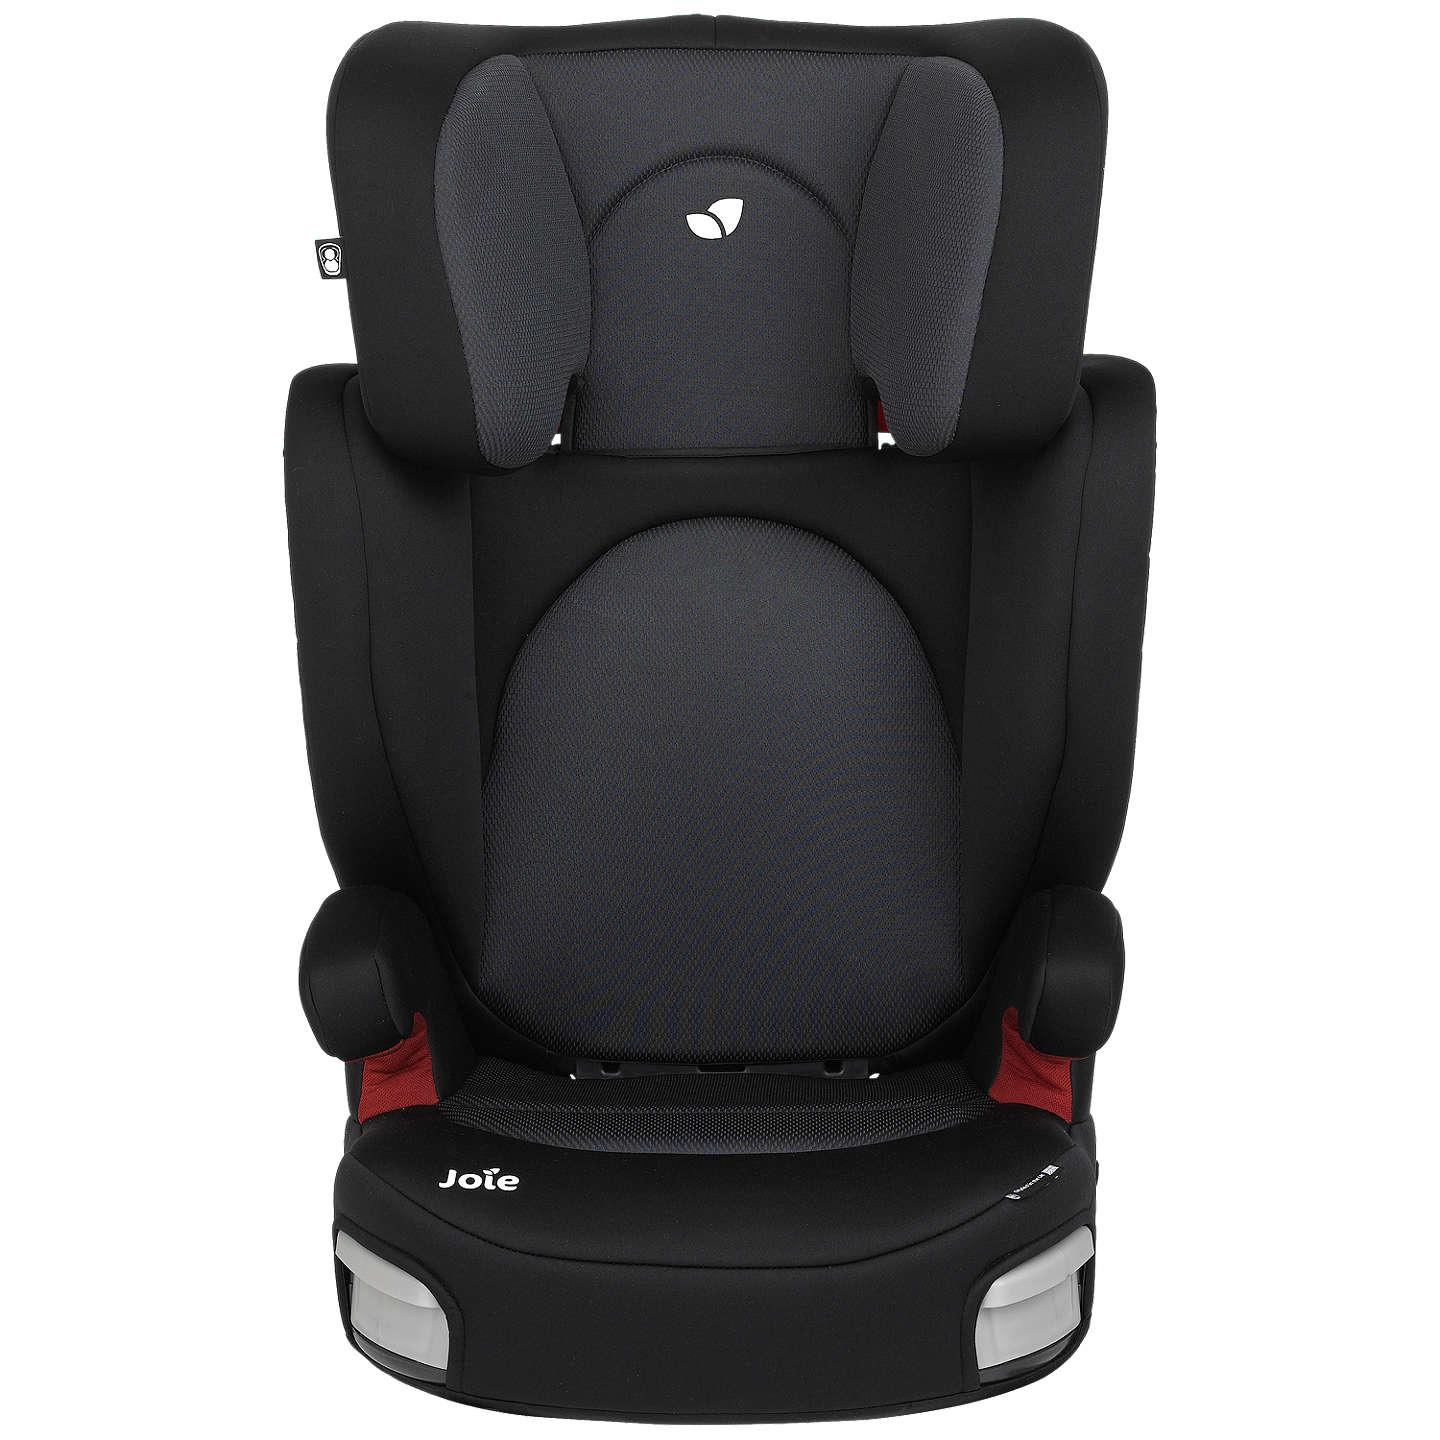 Joie Trillo Group 2/3 Car Seat, Earl Grey at John Lewis